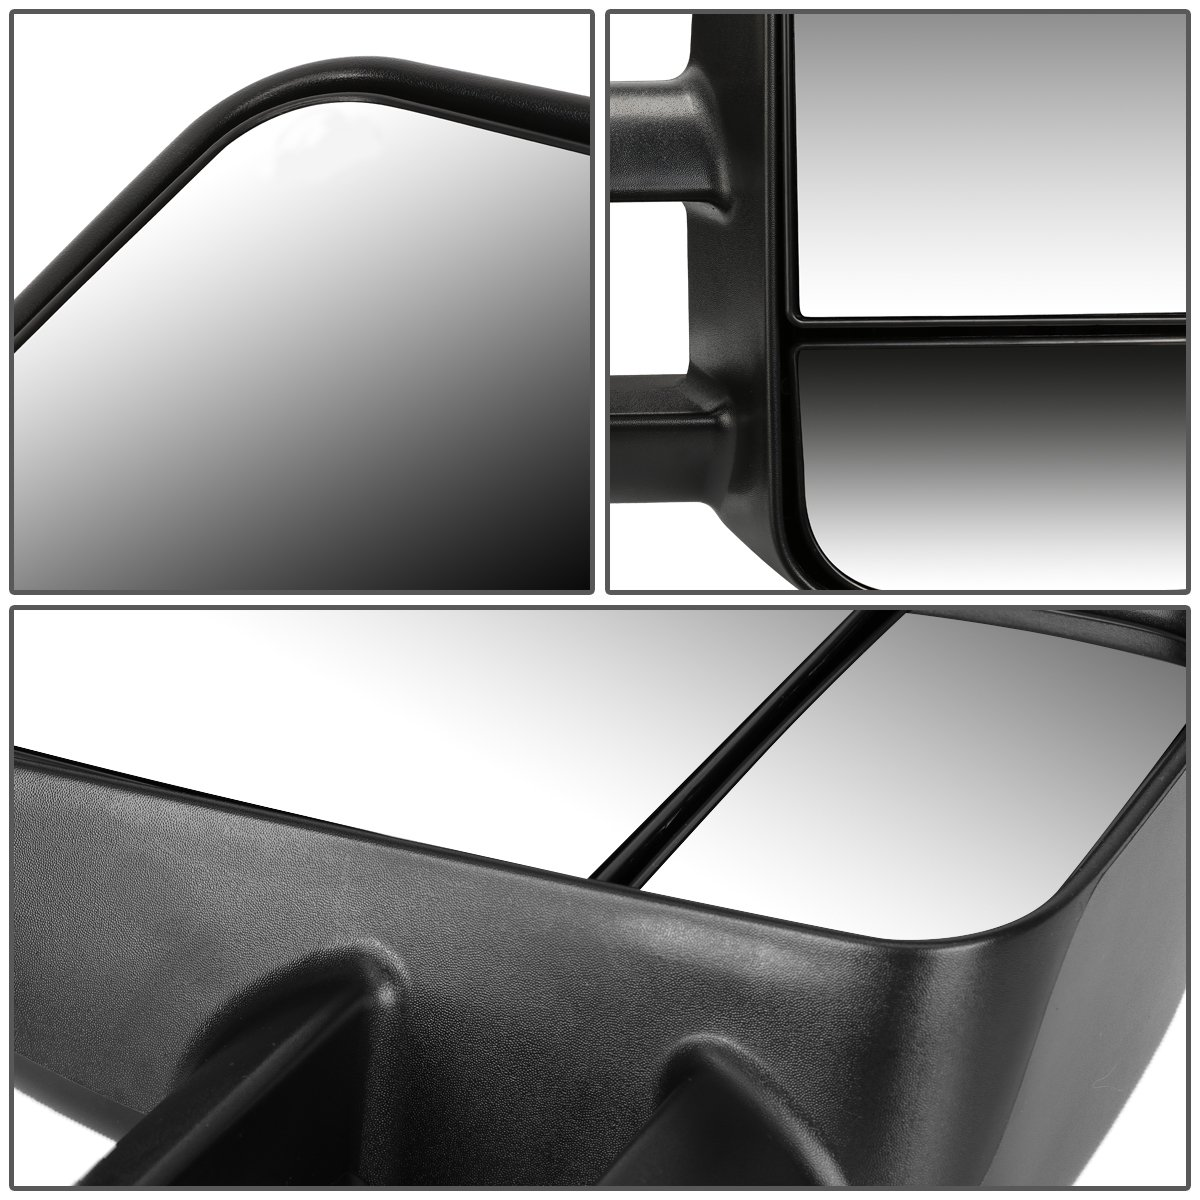 For Ford F150 F250 Pair of Black Textured Telescoping Manual Extenable Side Towing Mirrors